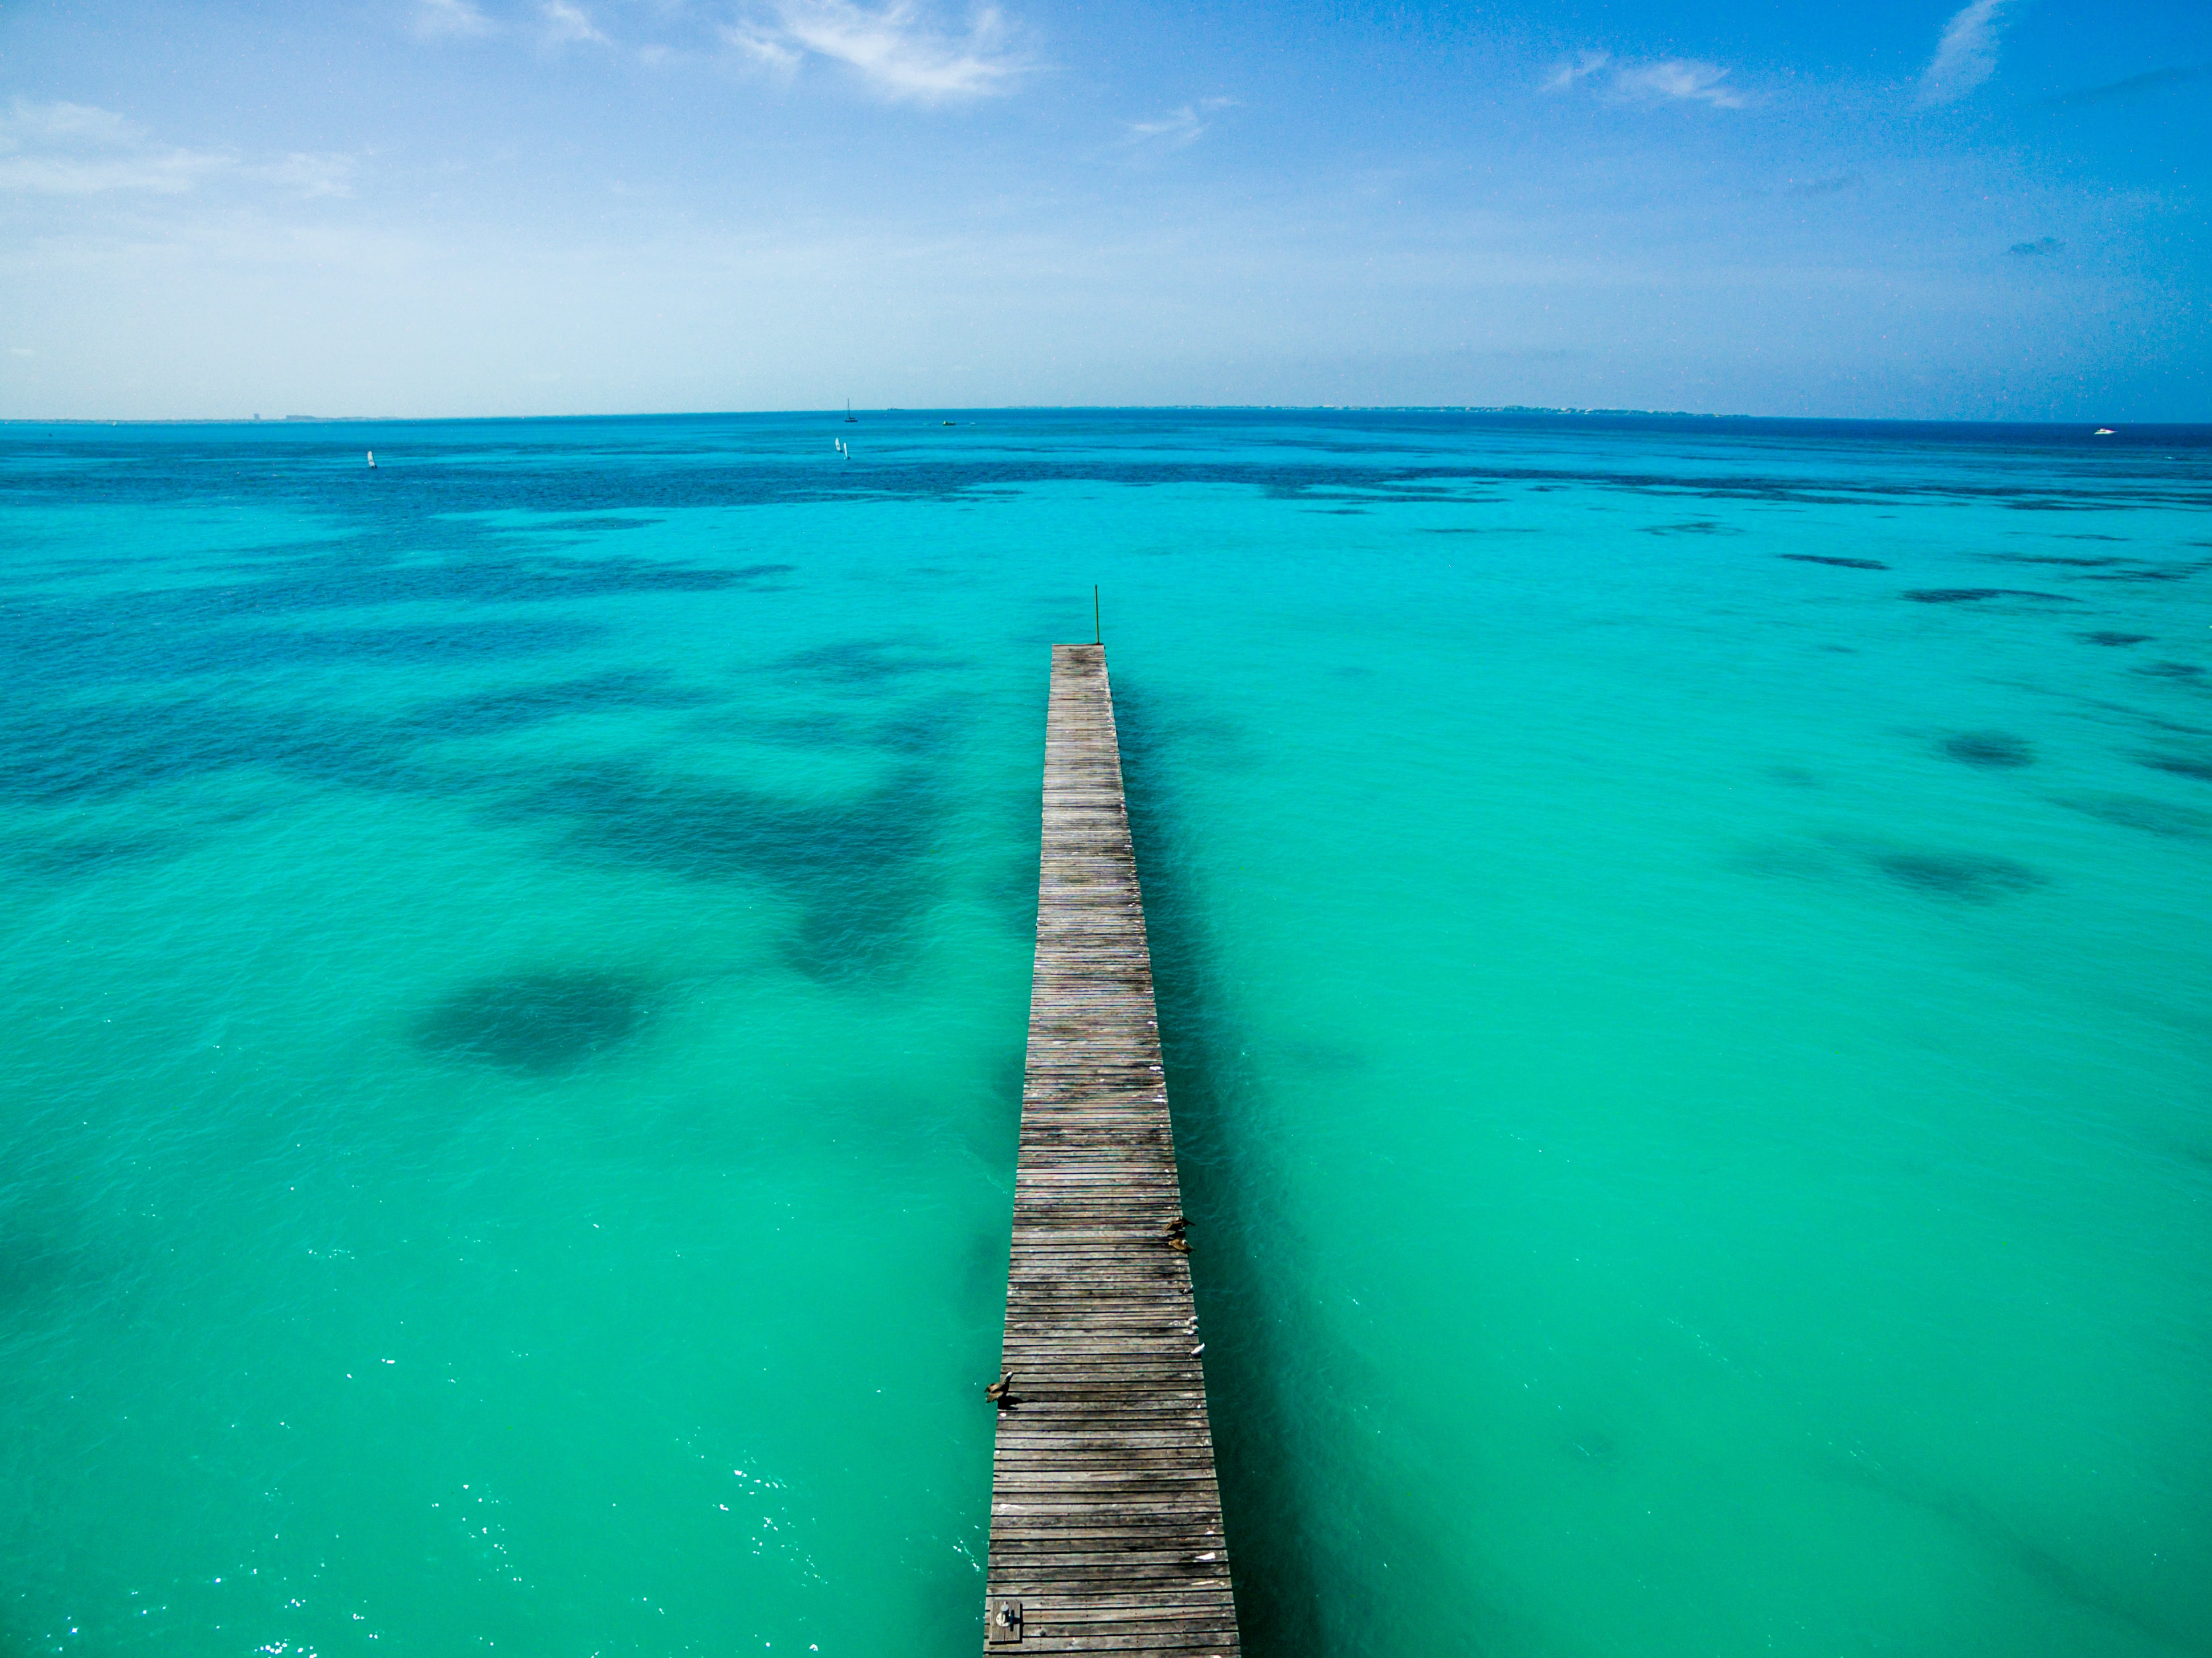 aerial photography of brown wooden beach dock and blue ocean under clear blue sky